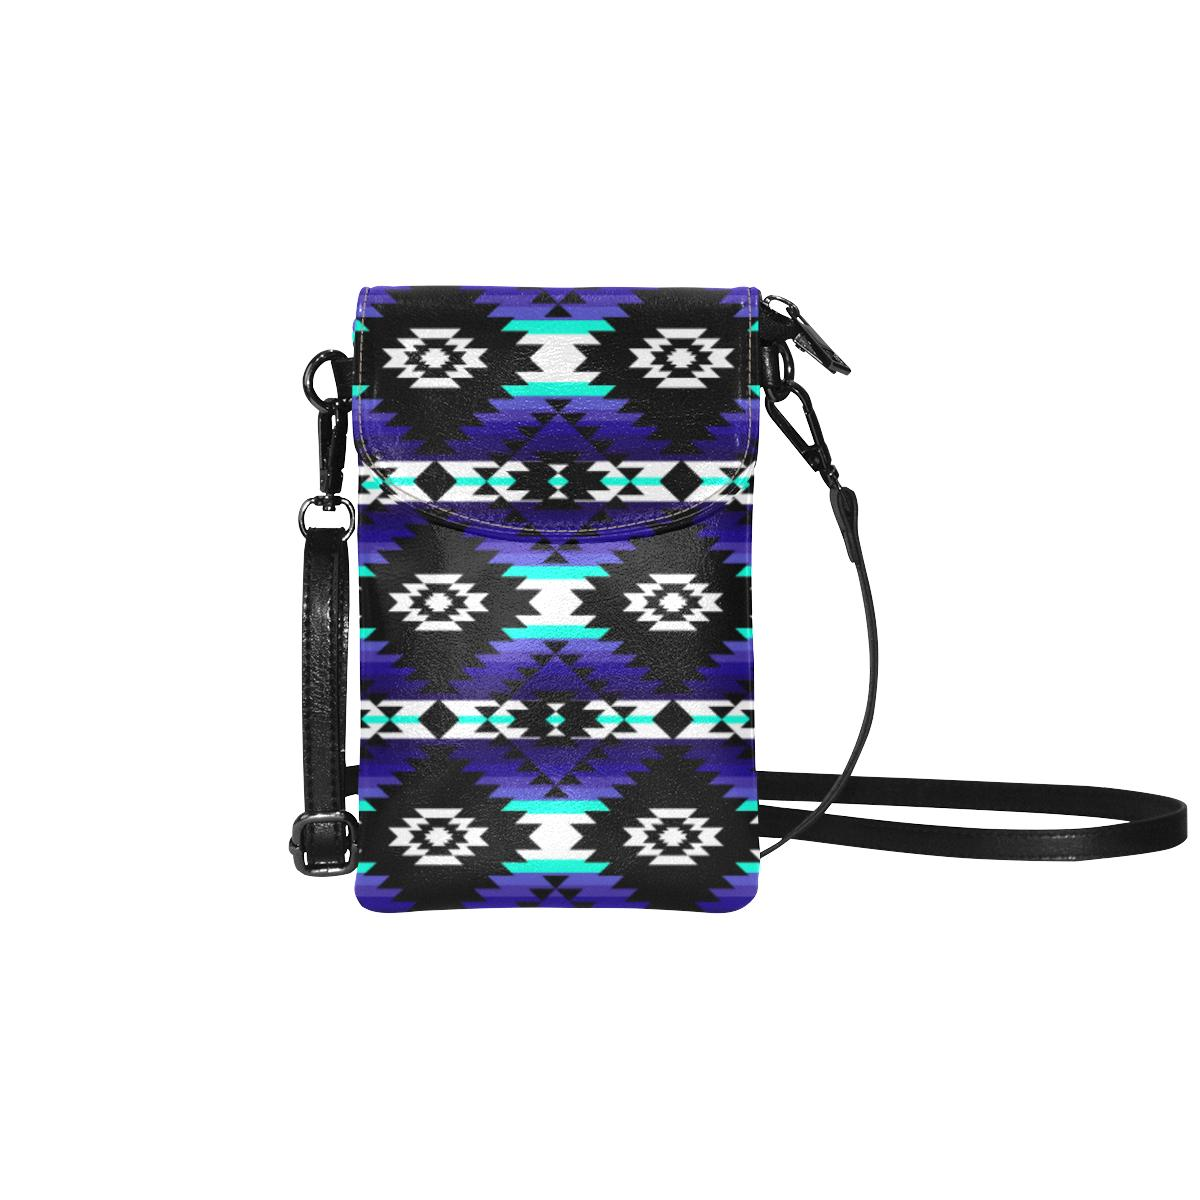 Cree Confederacy Midnight Small Cell Phone Purse (Model 1711) Small Cell Phone Purse (1711) e-joyer